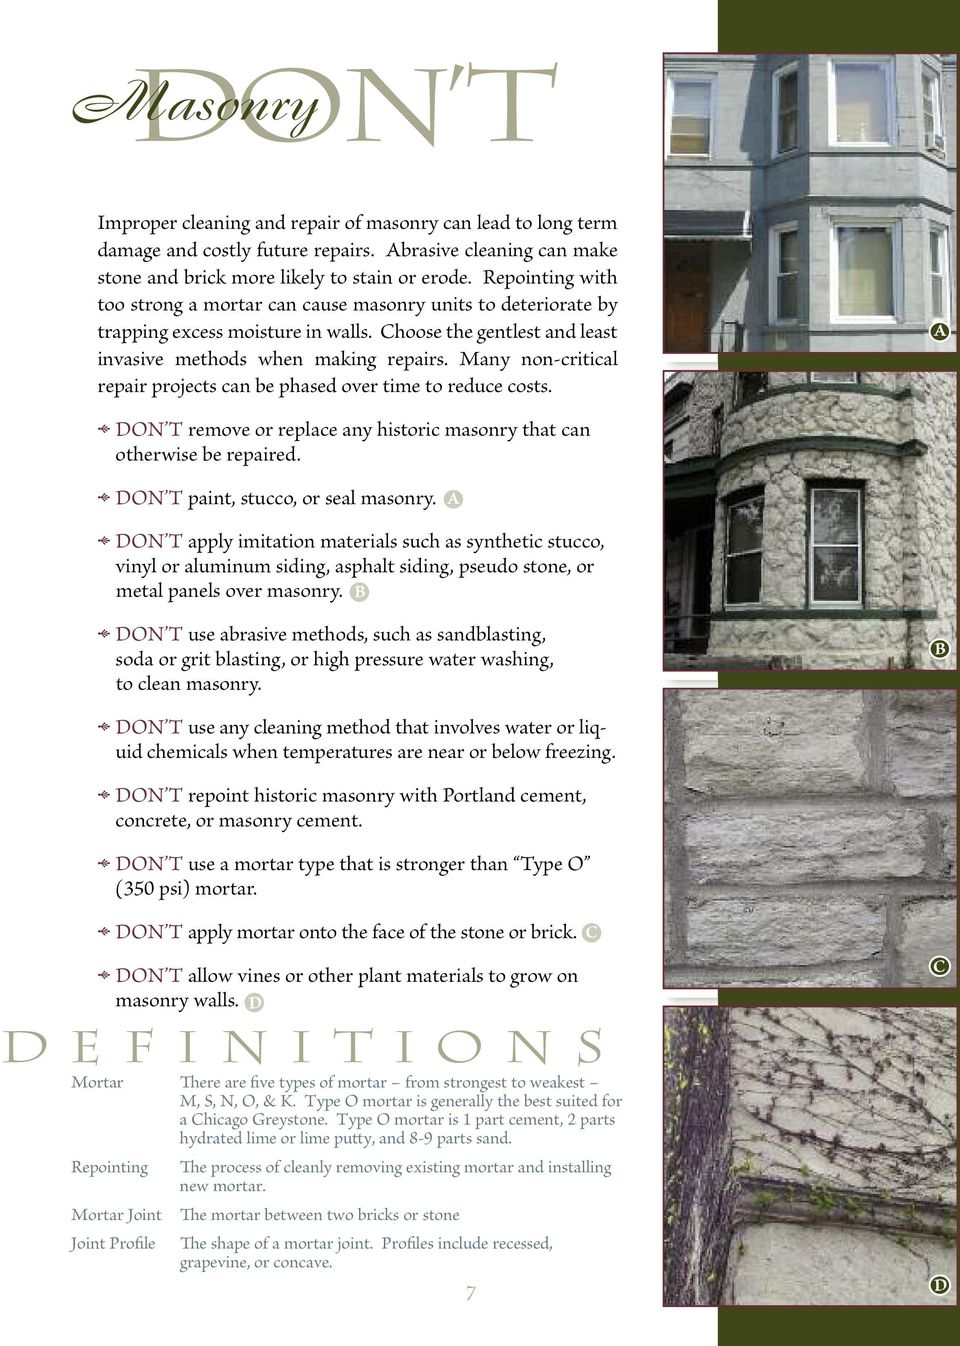 Many non-critical repair projects can be phased over time to reduce costs. on t remove or replace any historic masonry that can otherwise be repaired. on t paint, stucco, or seal masonry.